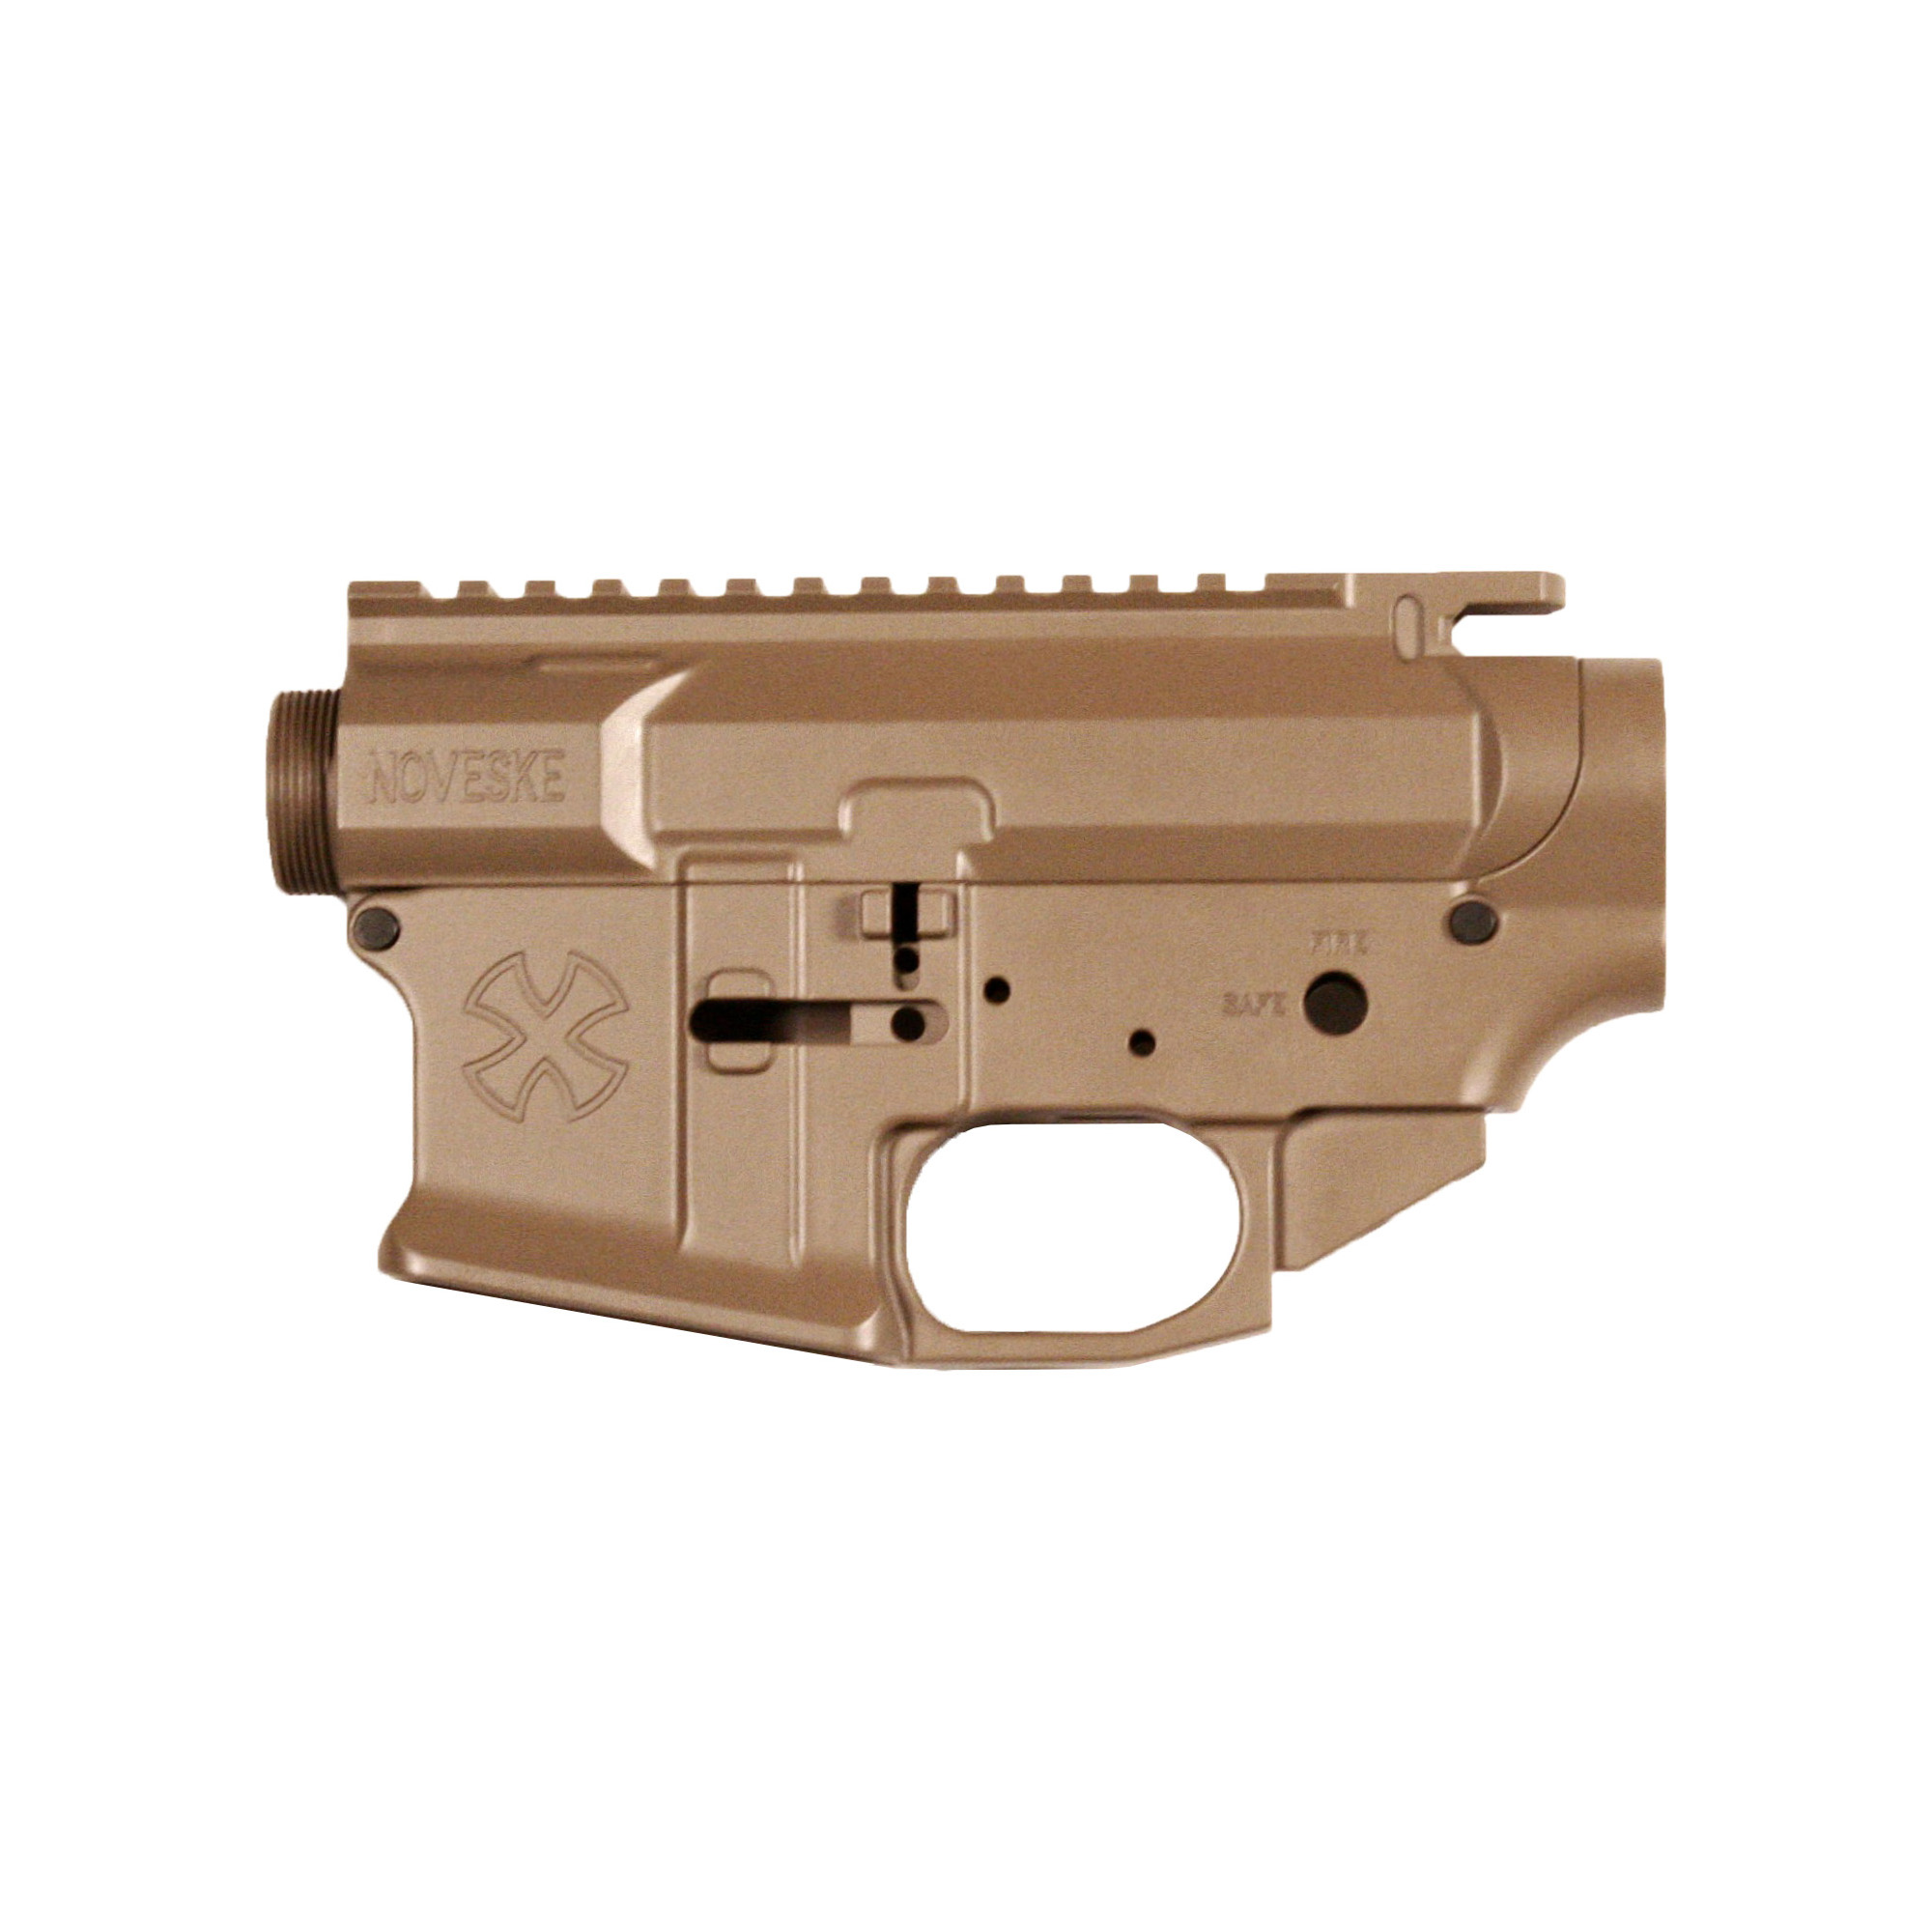 The Noveske Gen3 matched set is machined from billet aluminum and compatible with all Mil-Spec AR-15 parts and accessories. Includes Noveske marked takedown/pivot pins.